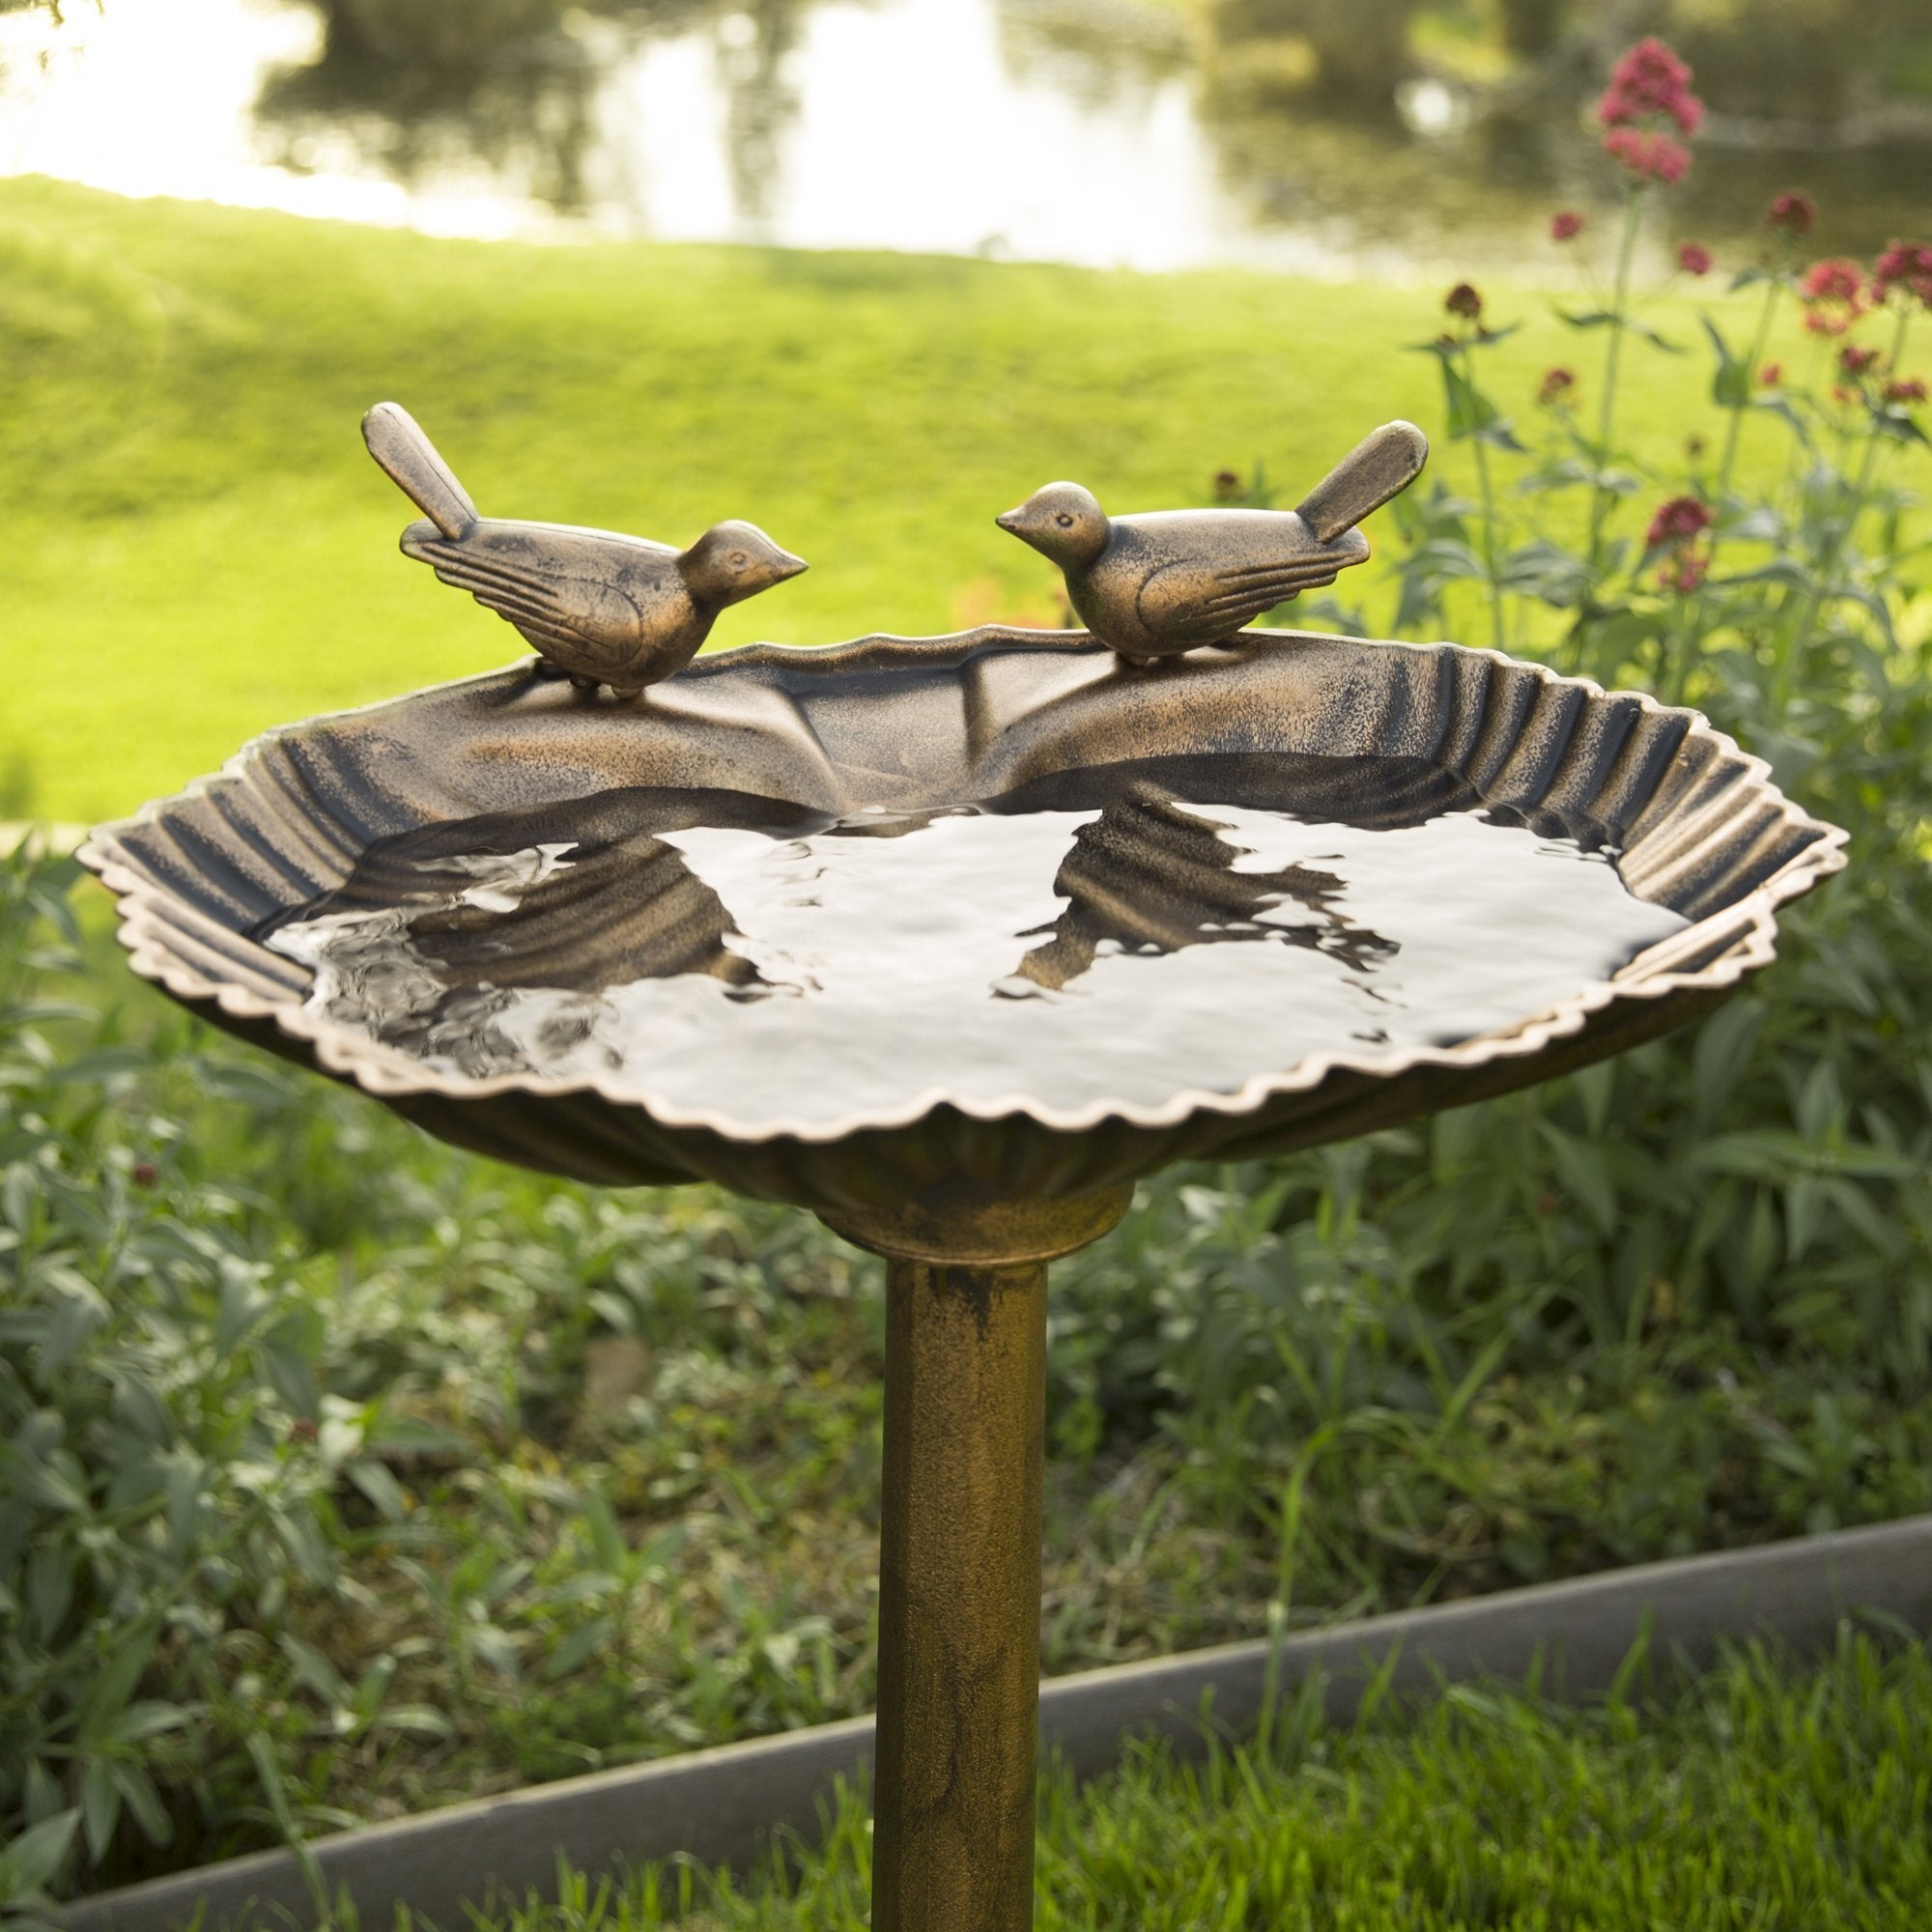 Pedestal Bird Bath Decoration w/ Sparrow Statues -  Antique Gold